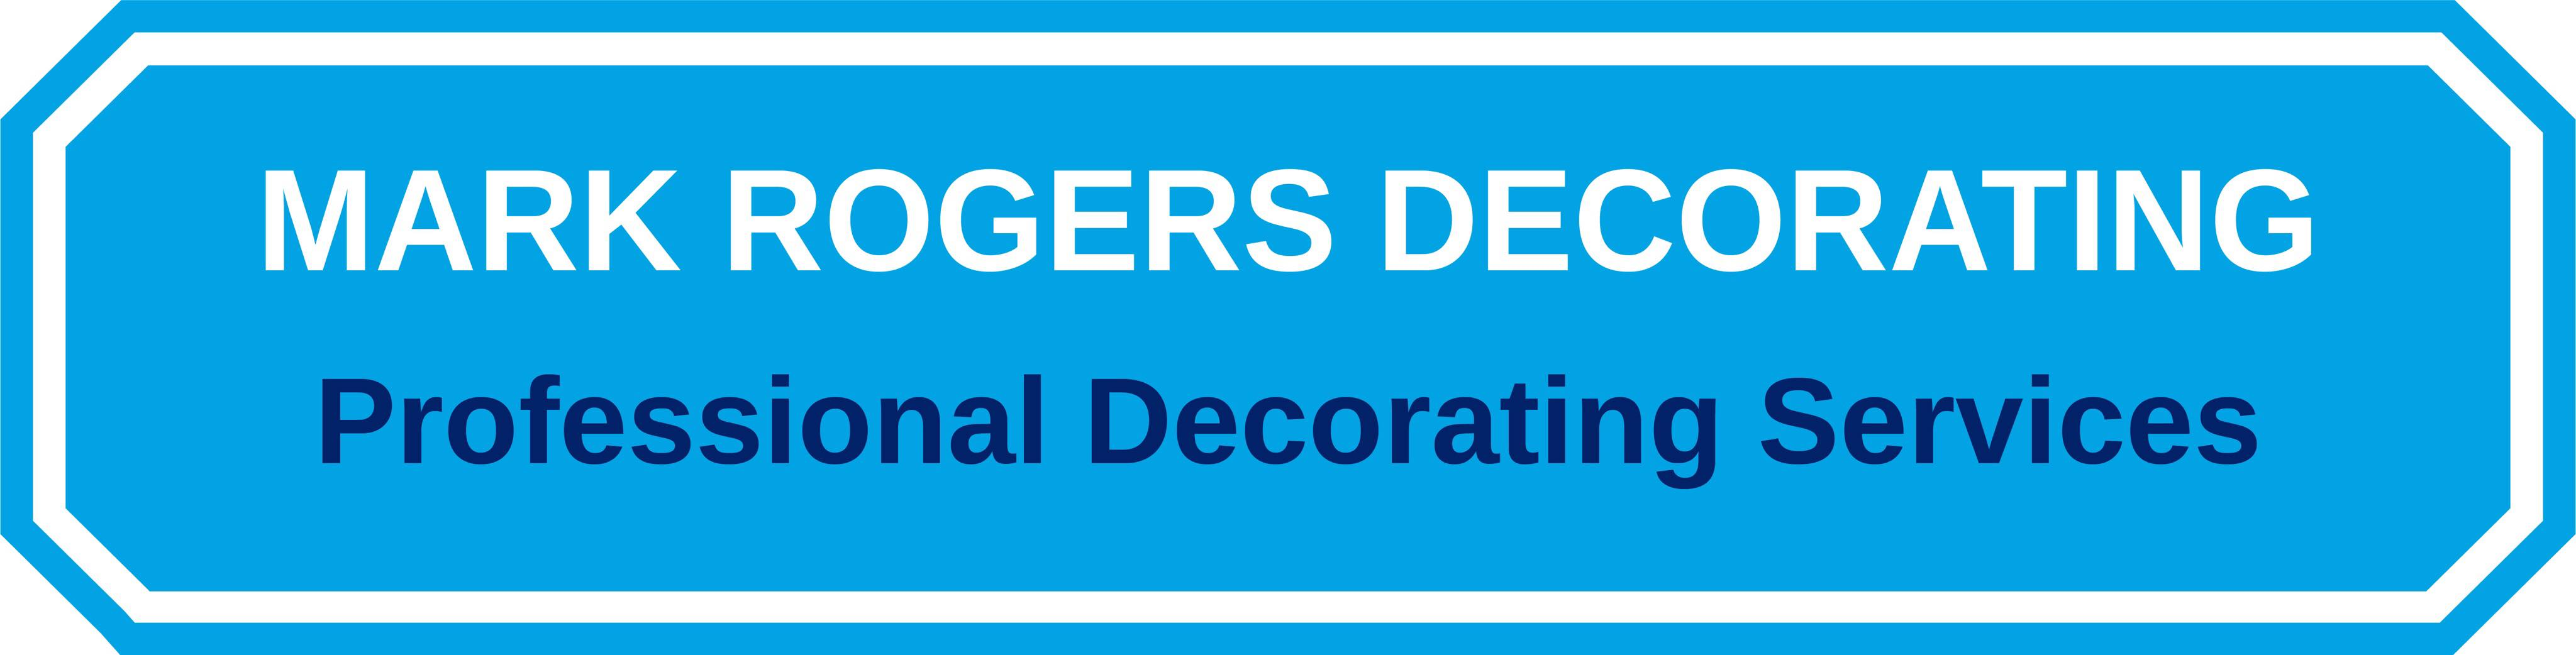 mark rogers decorating logo